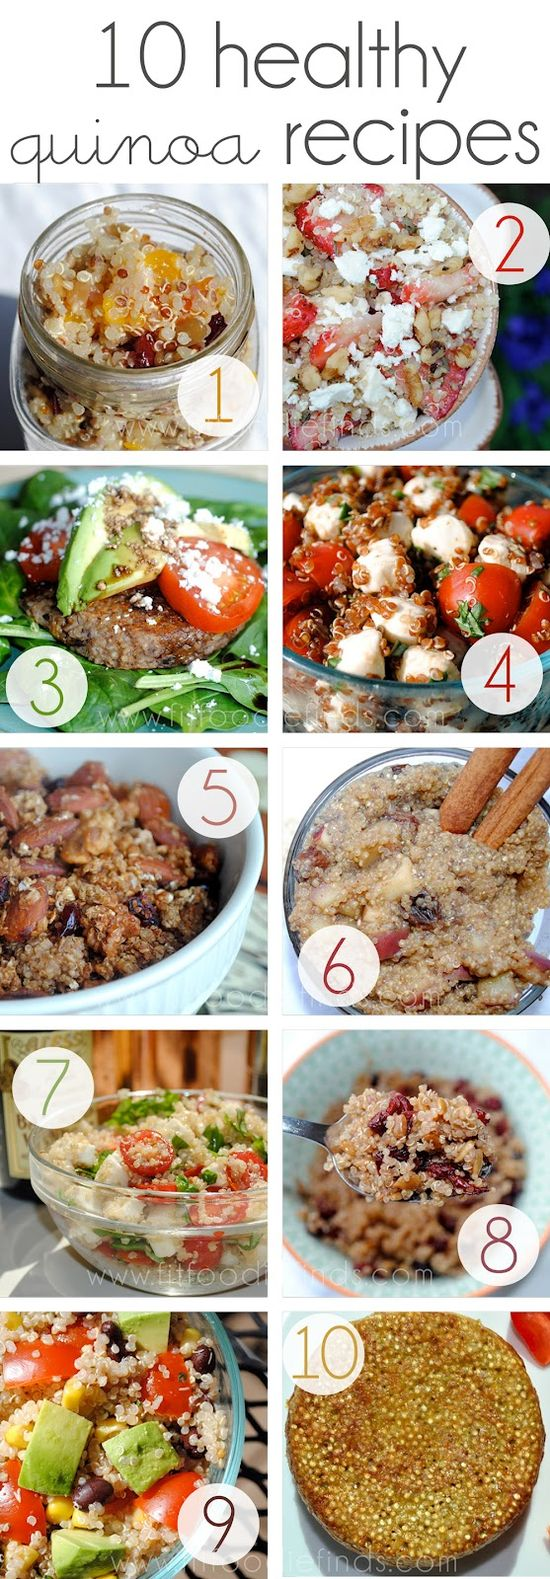 fit foodie finds: 10 healthy quinoa recipes.